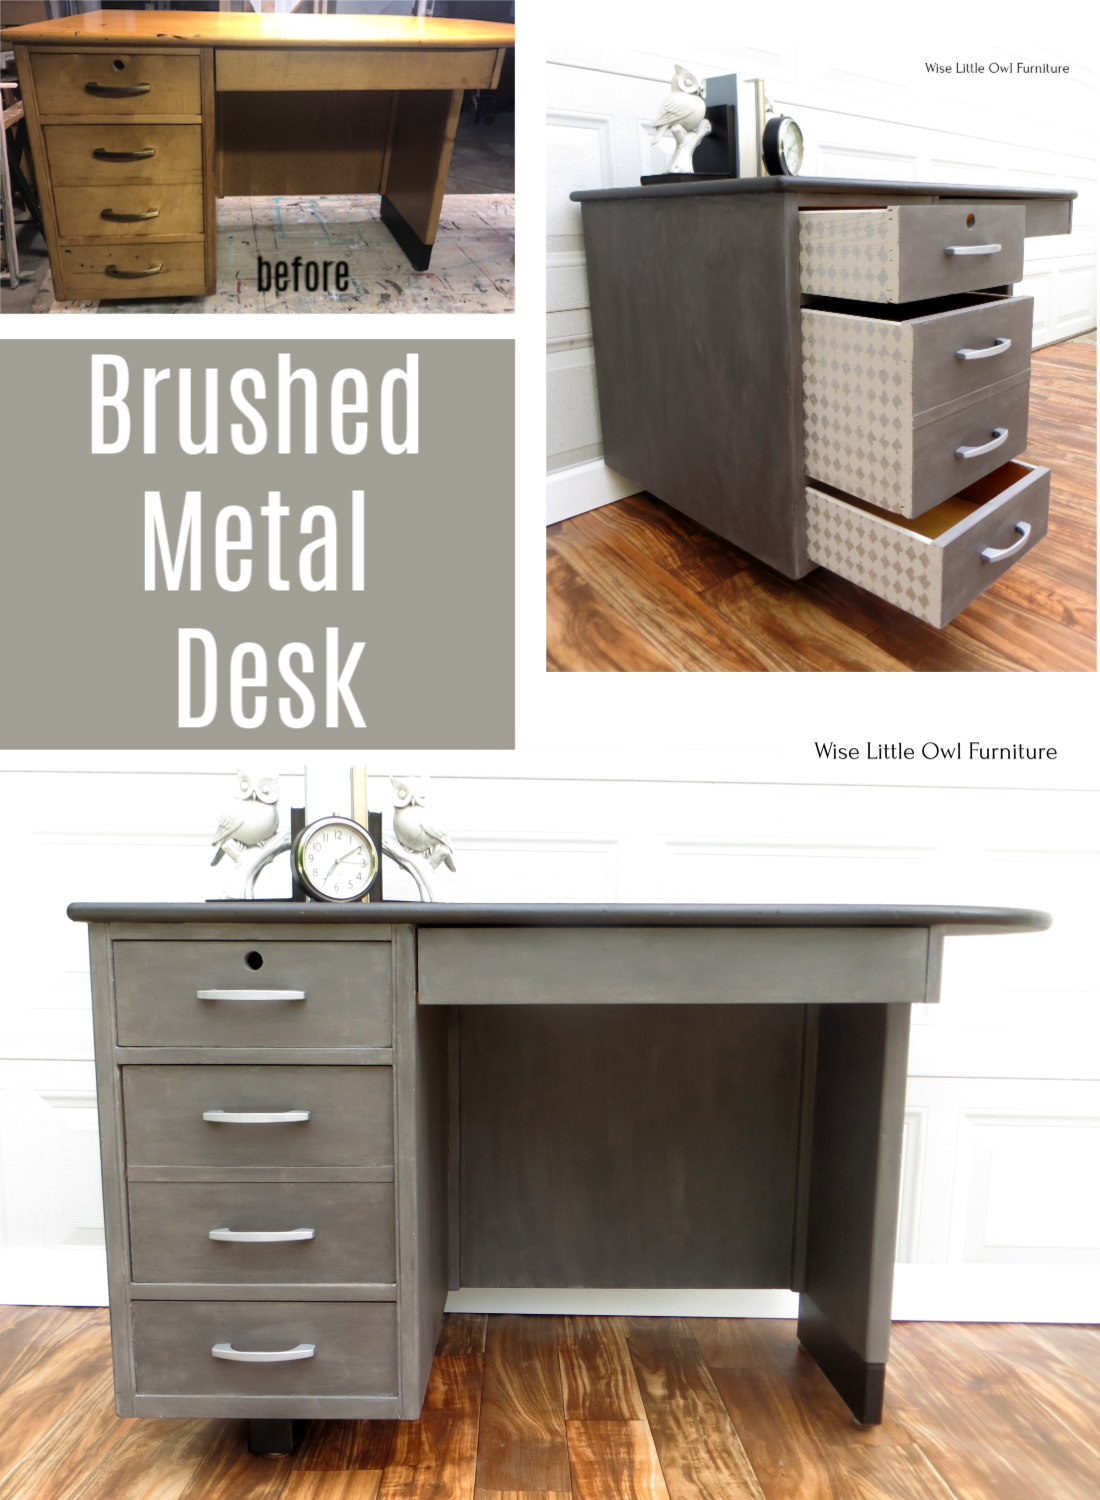 Brushed Metallic Look With Dixie Belle Paint In 2020 Painting Furniture Diy Furniture Makeover Diy Gray Painted Furniture